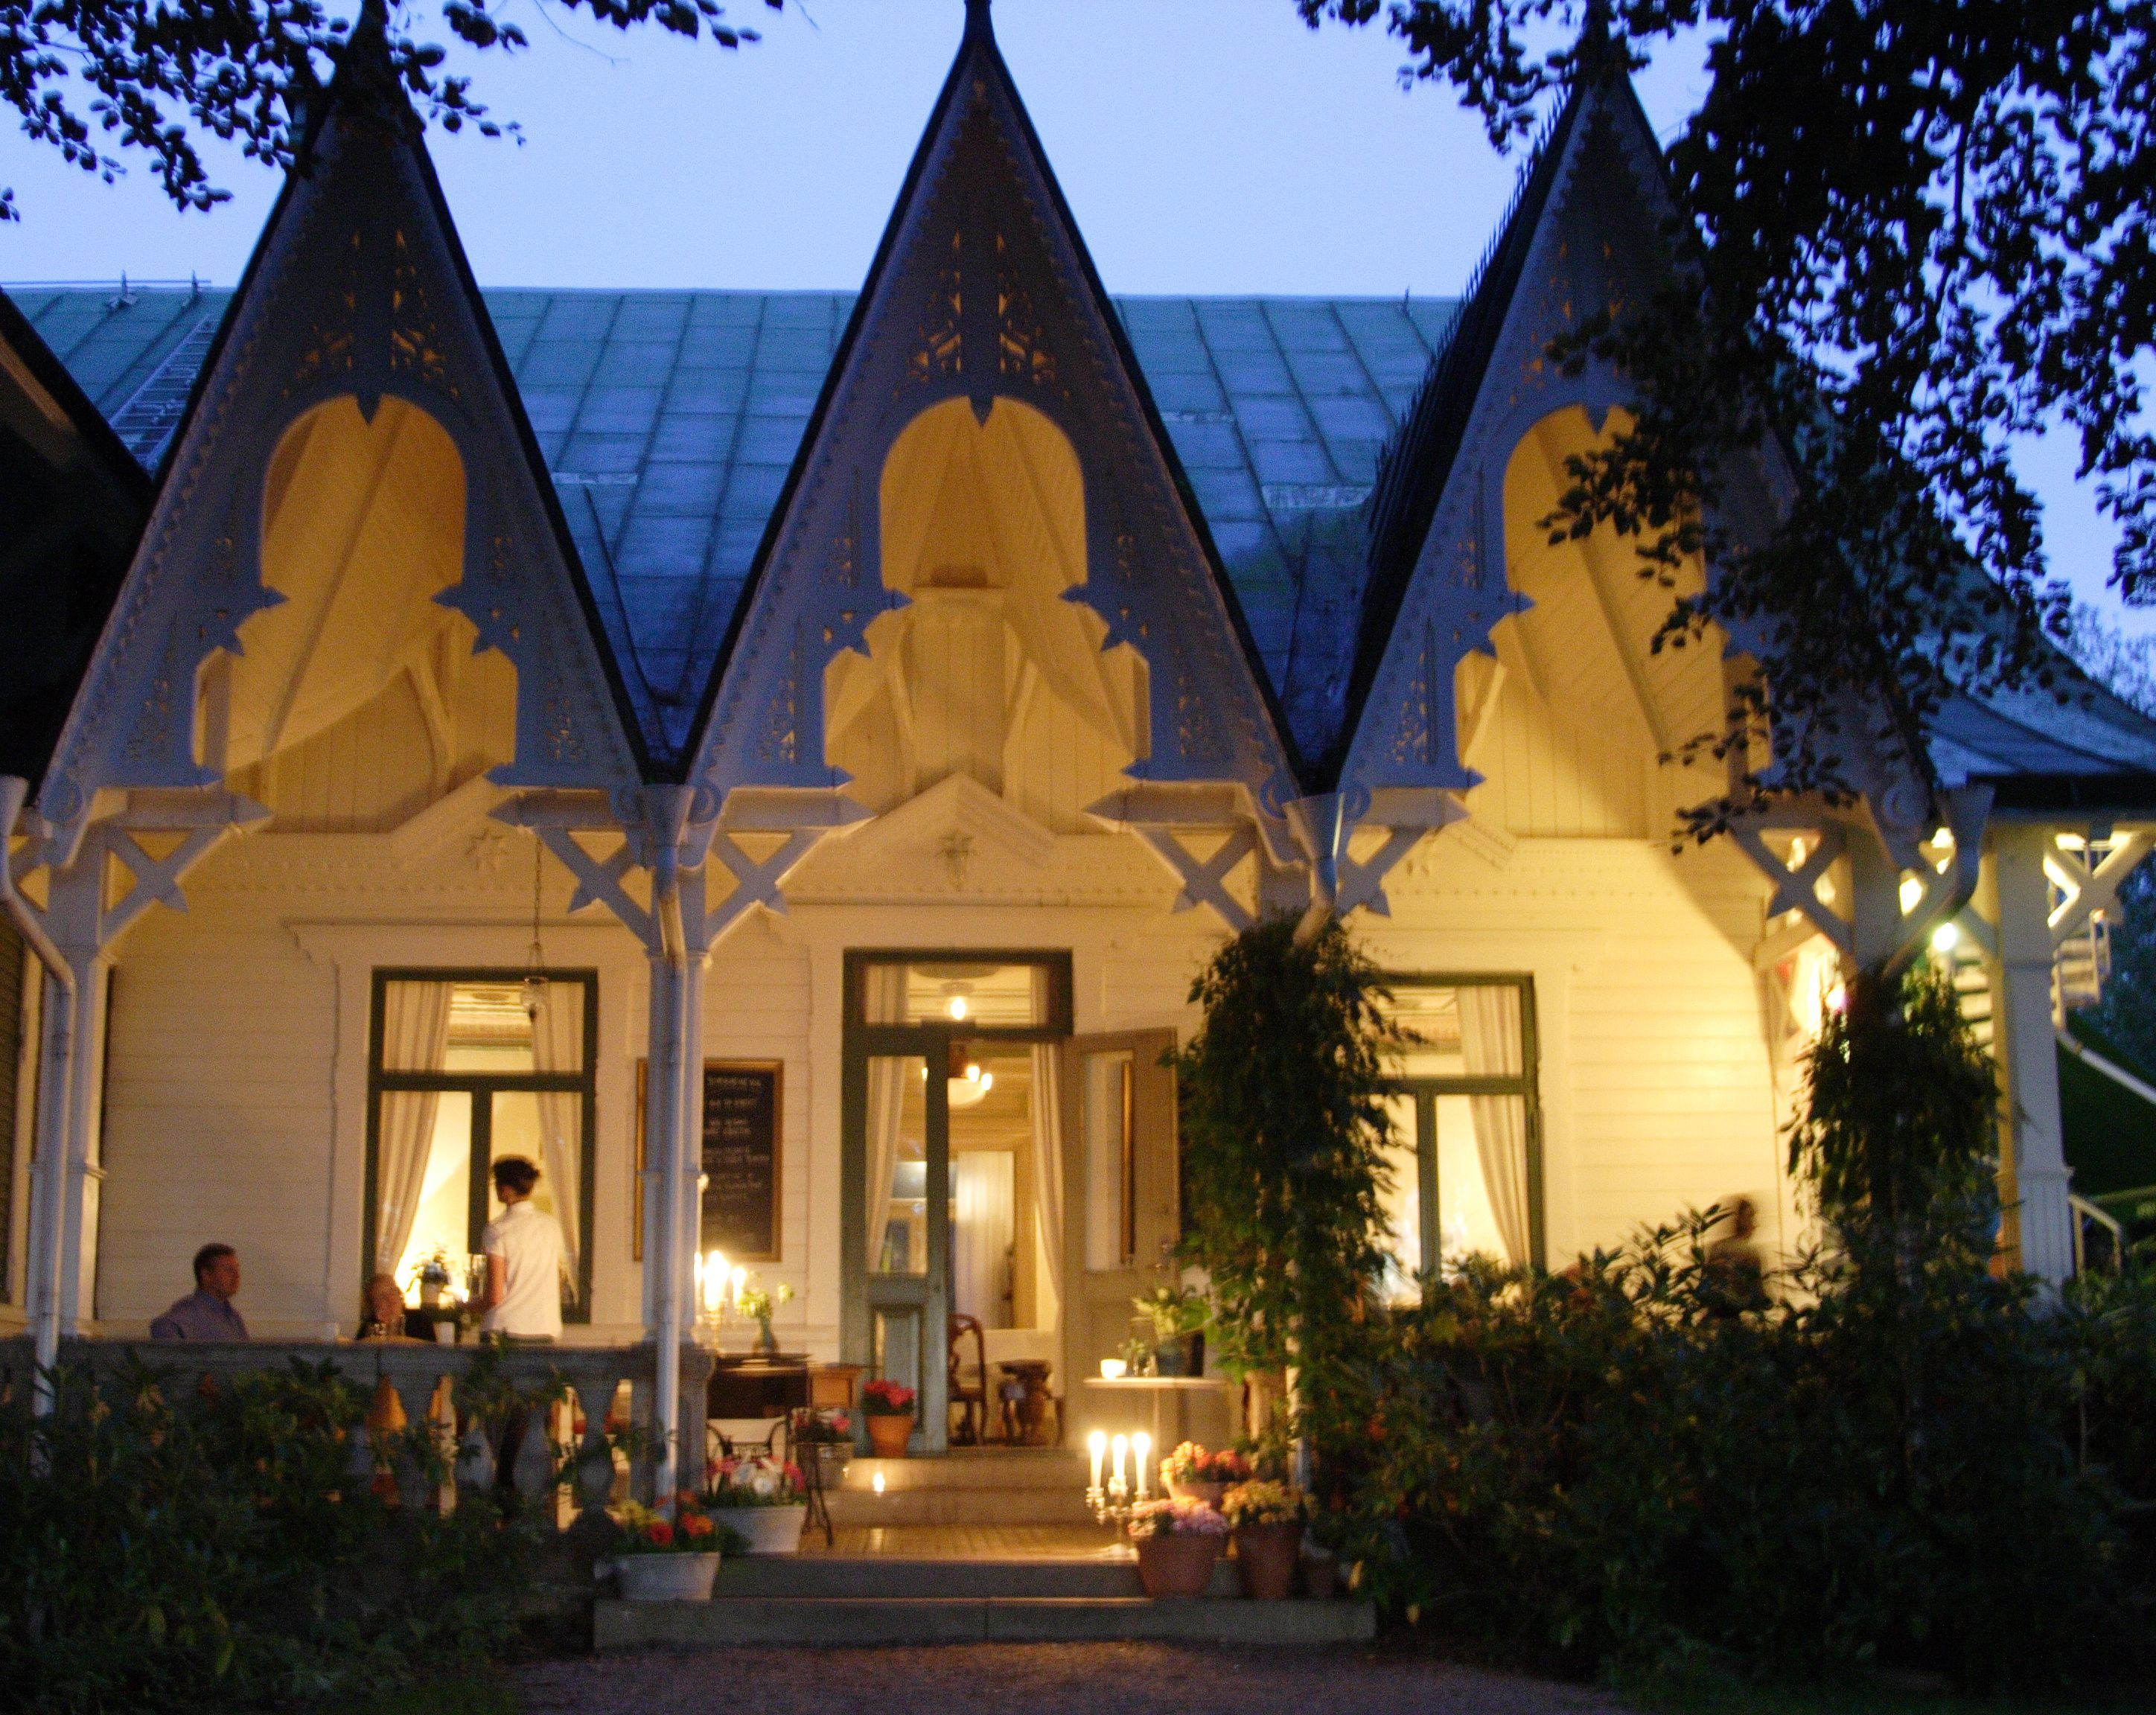 Weekend Wellbeing at Villa Sjötorp